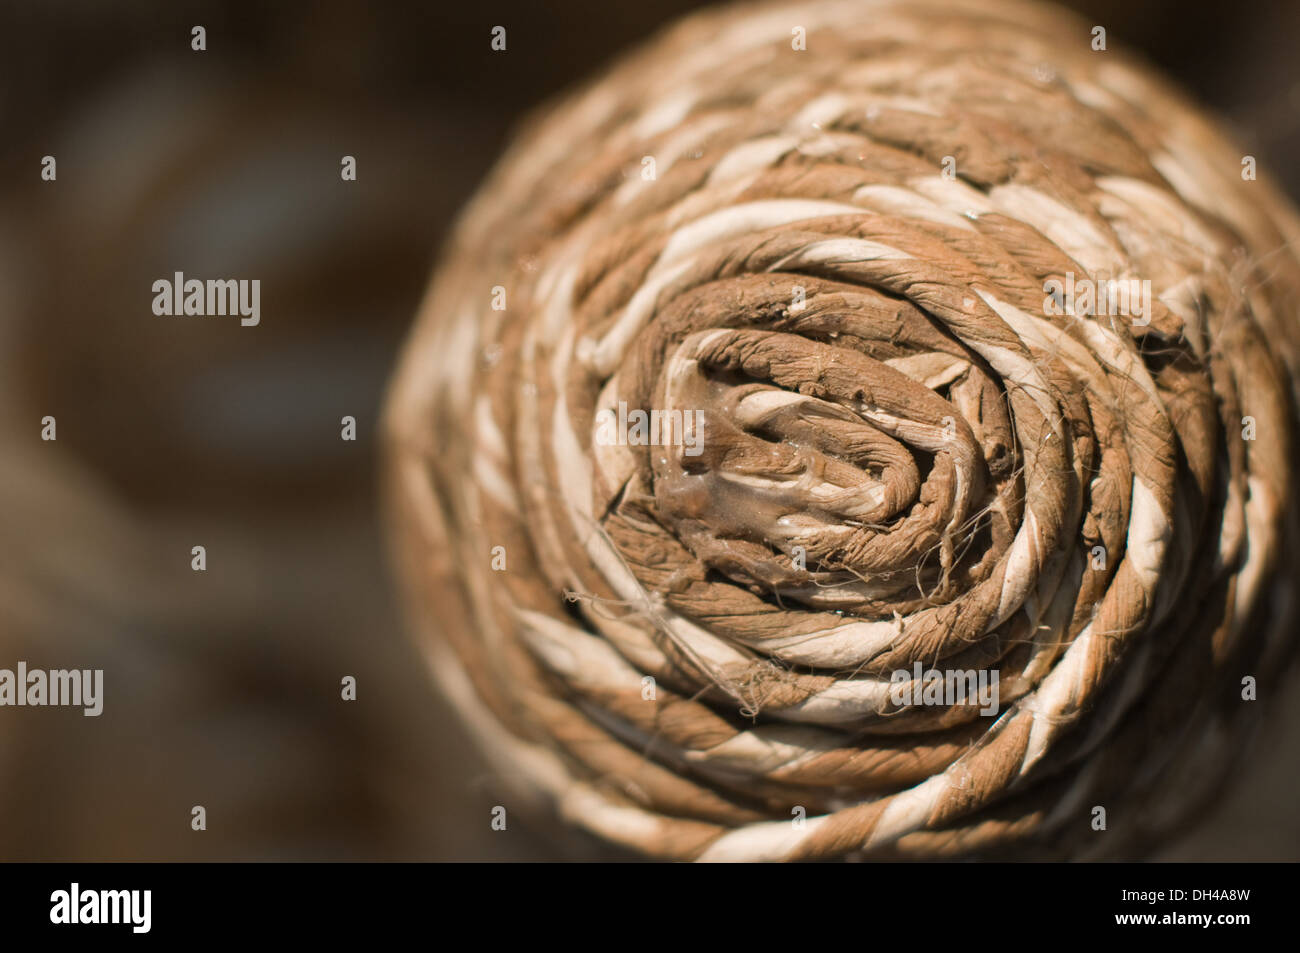 Twisted rope of cloth coiled creating circular pattern Pune Maharashtra India Asia Jan 2012 - Stock Image